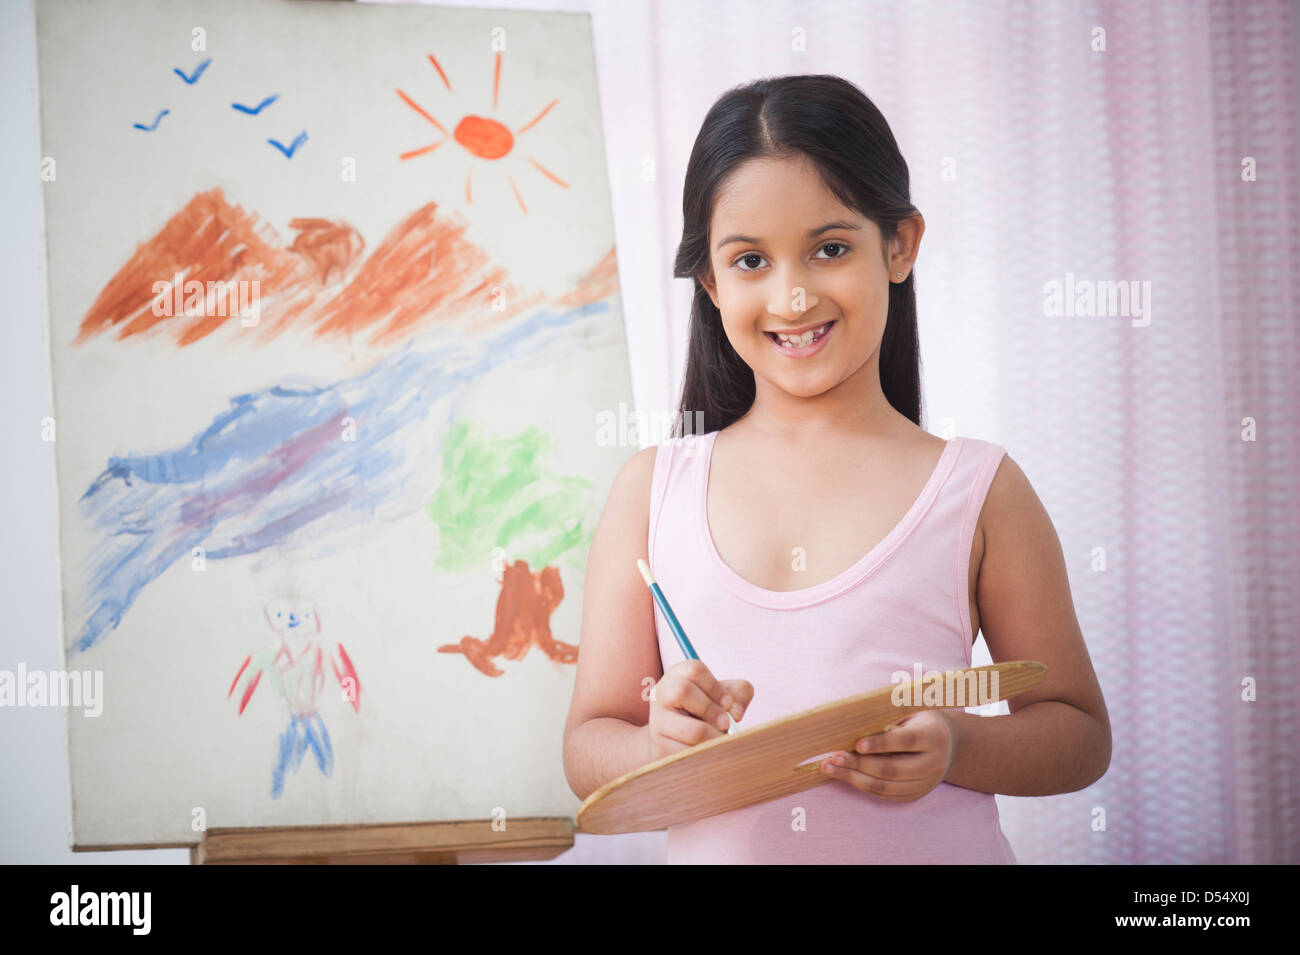 Portrait of a girl painting on artists canvas and smiling - Stock Image